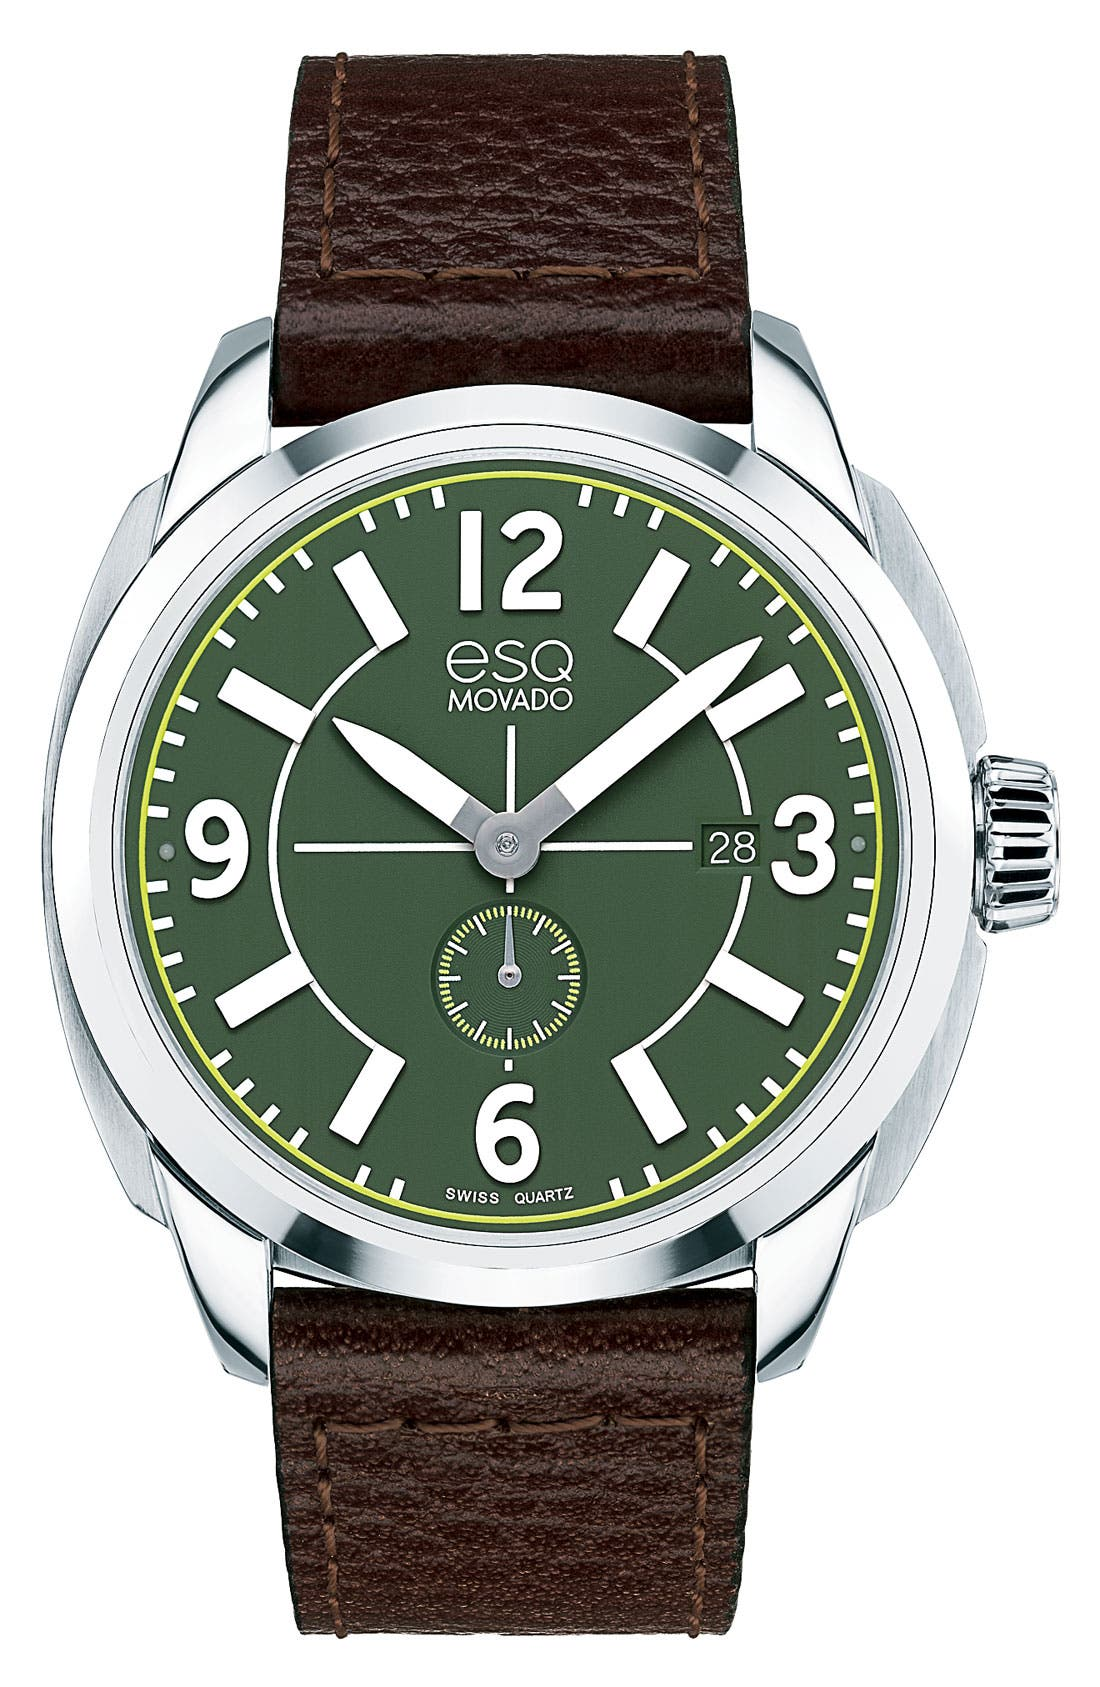 Main Image - ESQ Movado 'Excel' Round Leather Strap Watch, 43mm